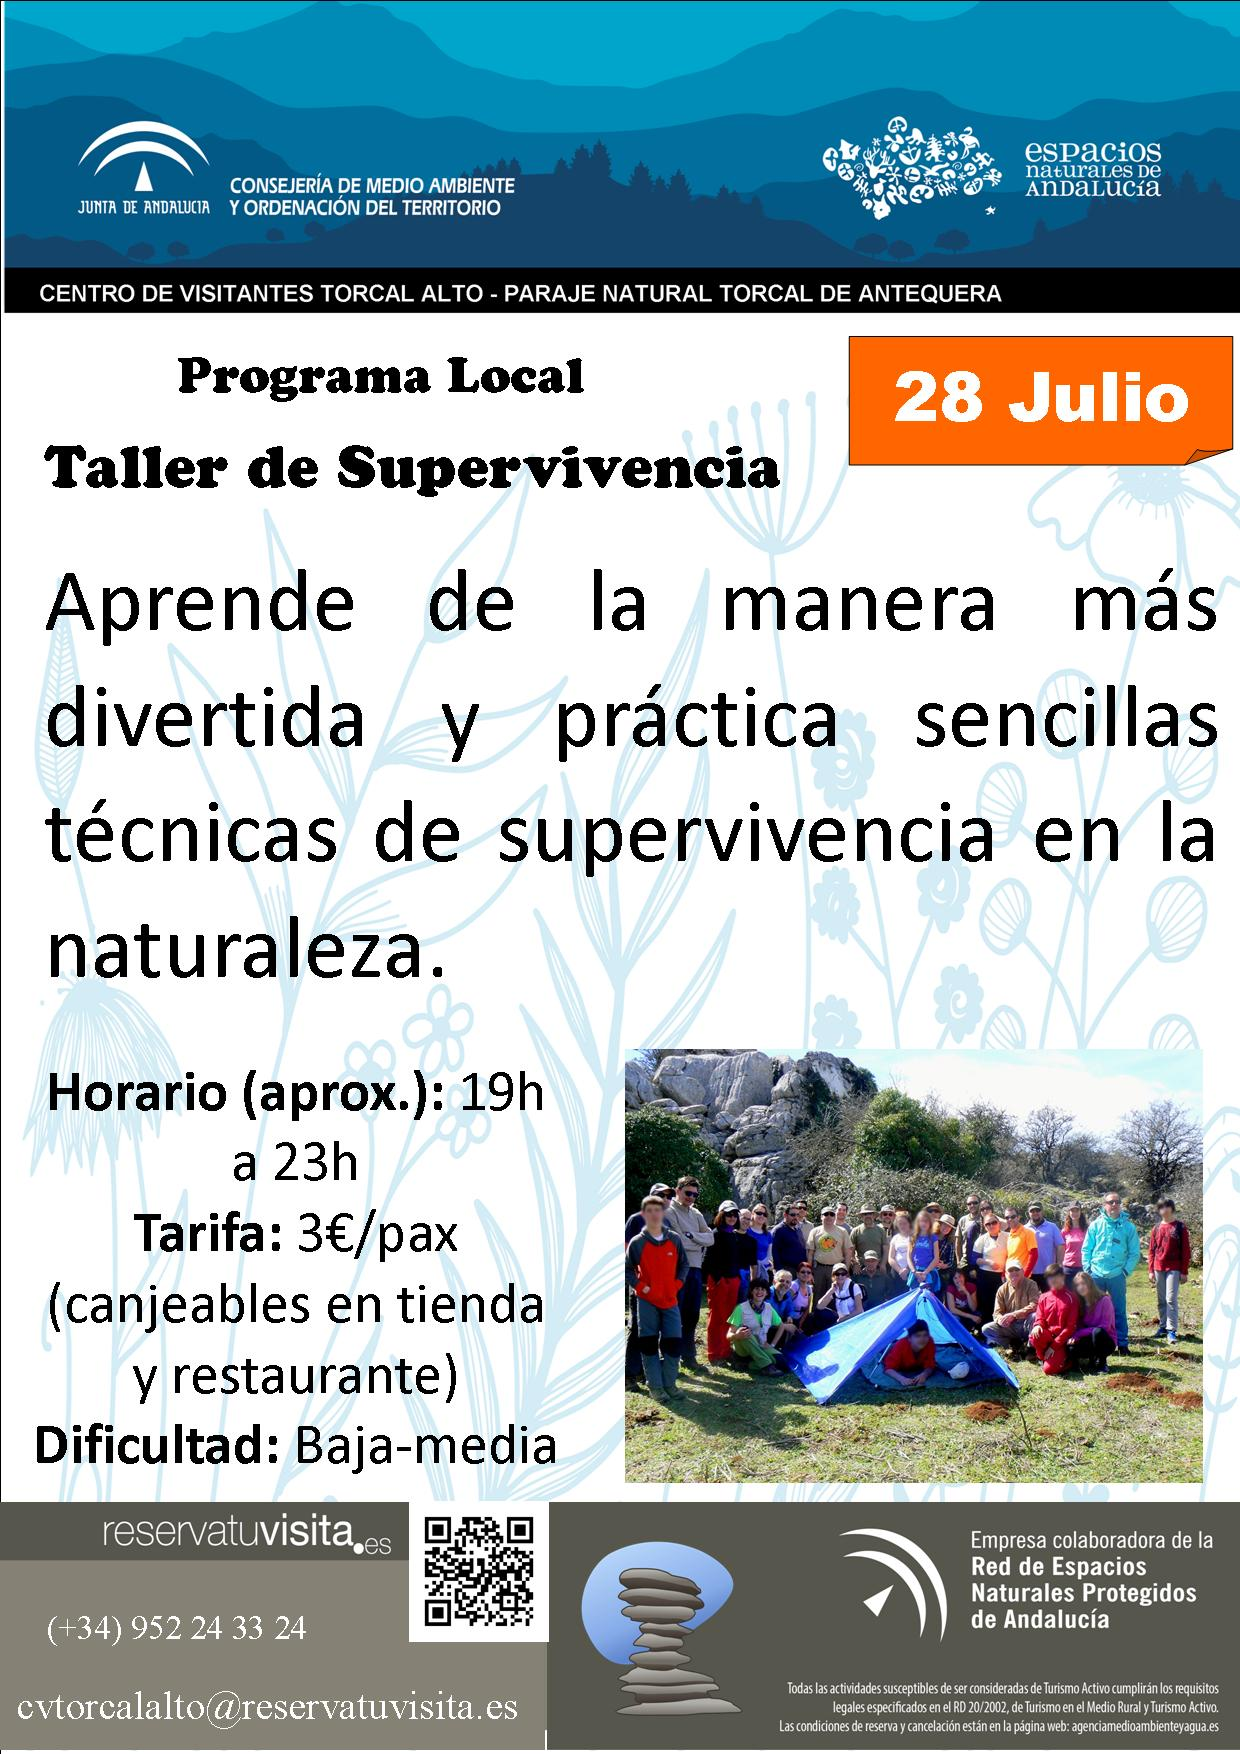 P. Local Taller Supervivencia 2017_Torcal